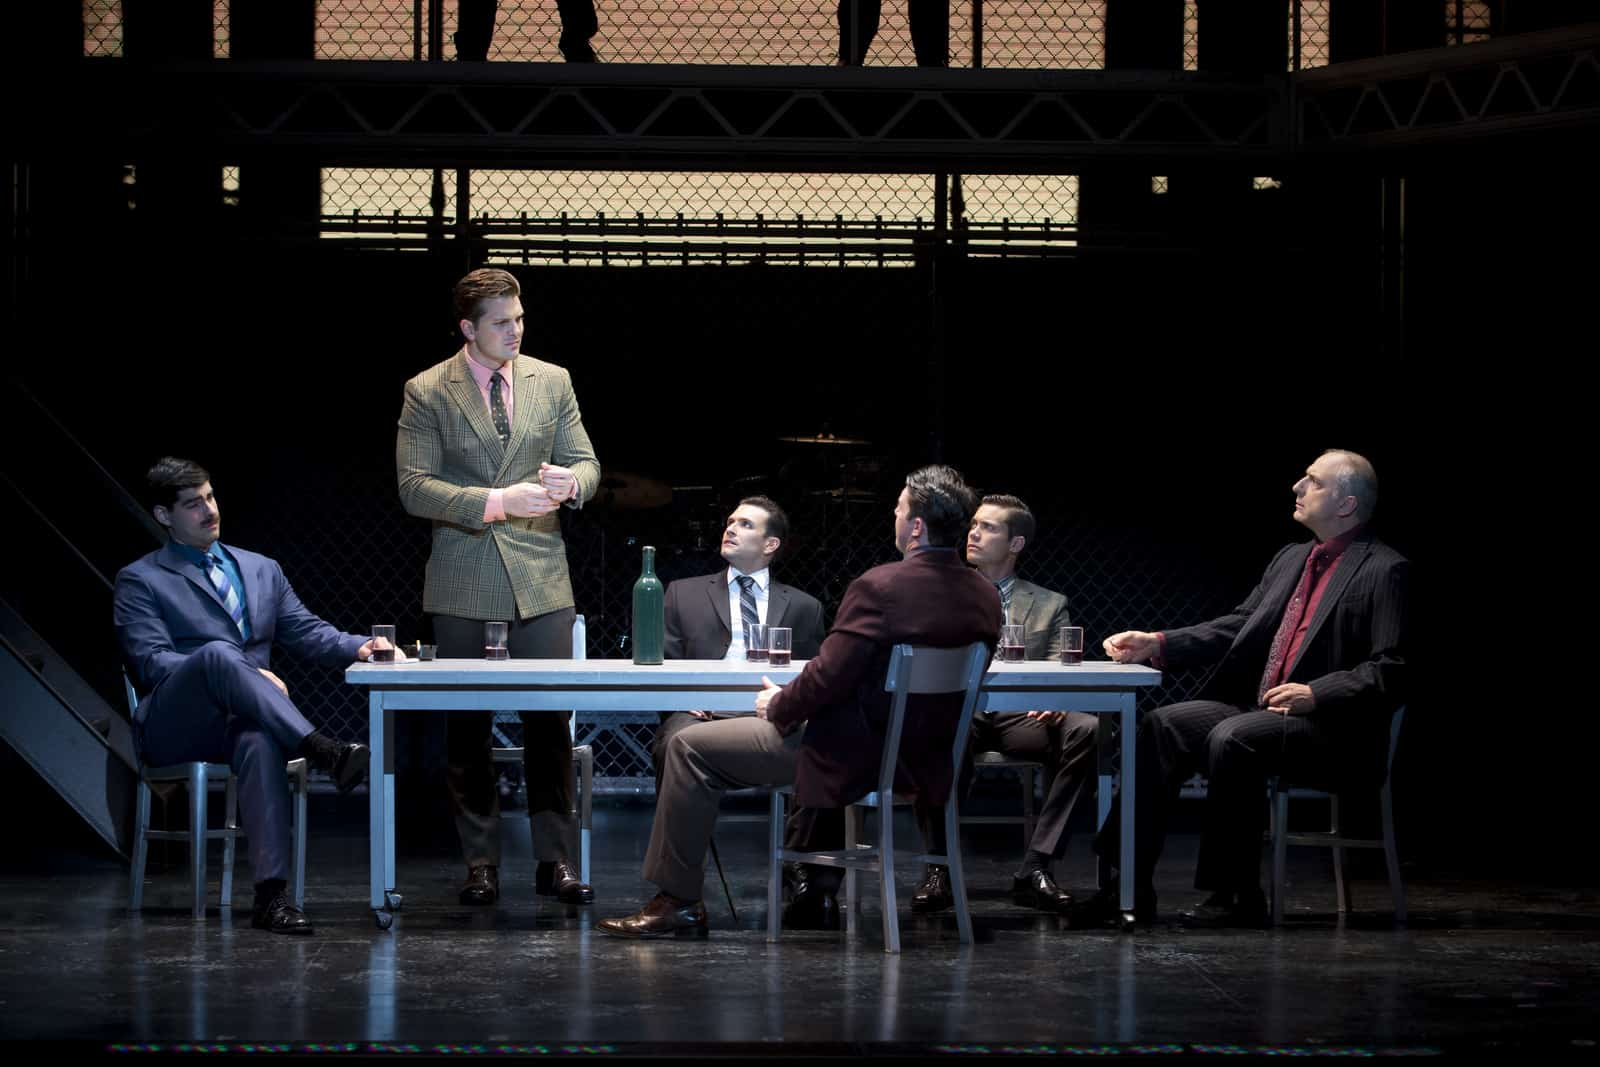 jersey boys musical review essay From director clint eastwood comes the big-screen version of the tony award-winning musical jersey boys the film tells the story of four young men from th.